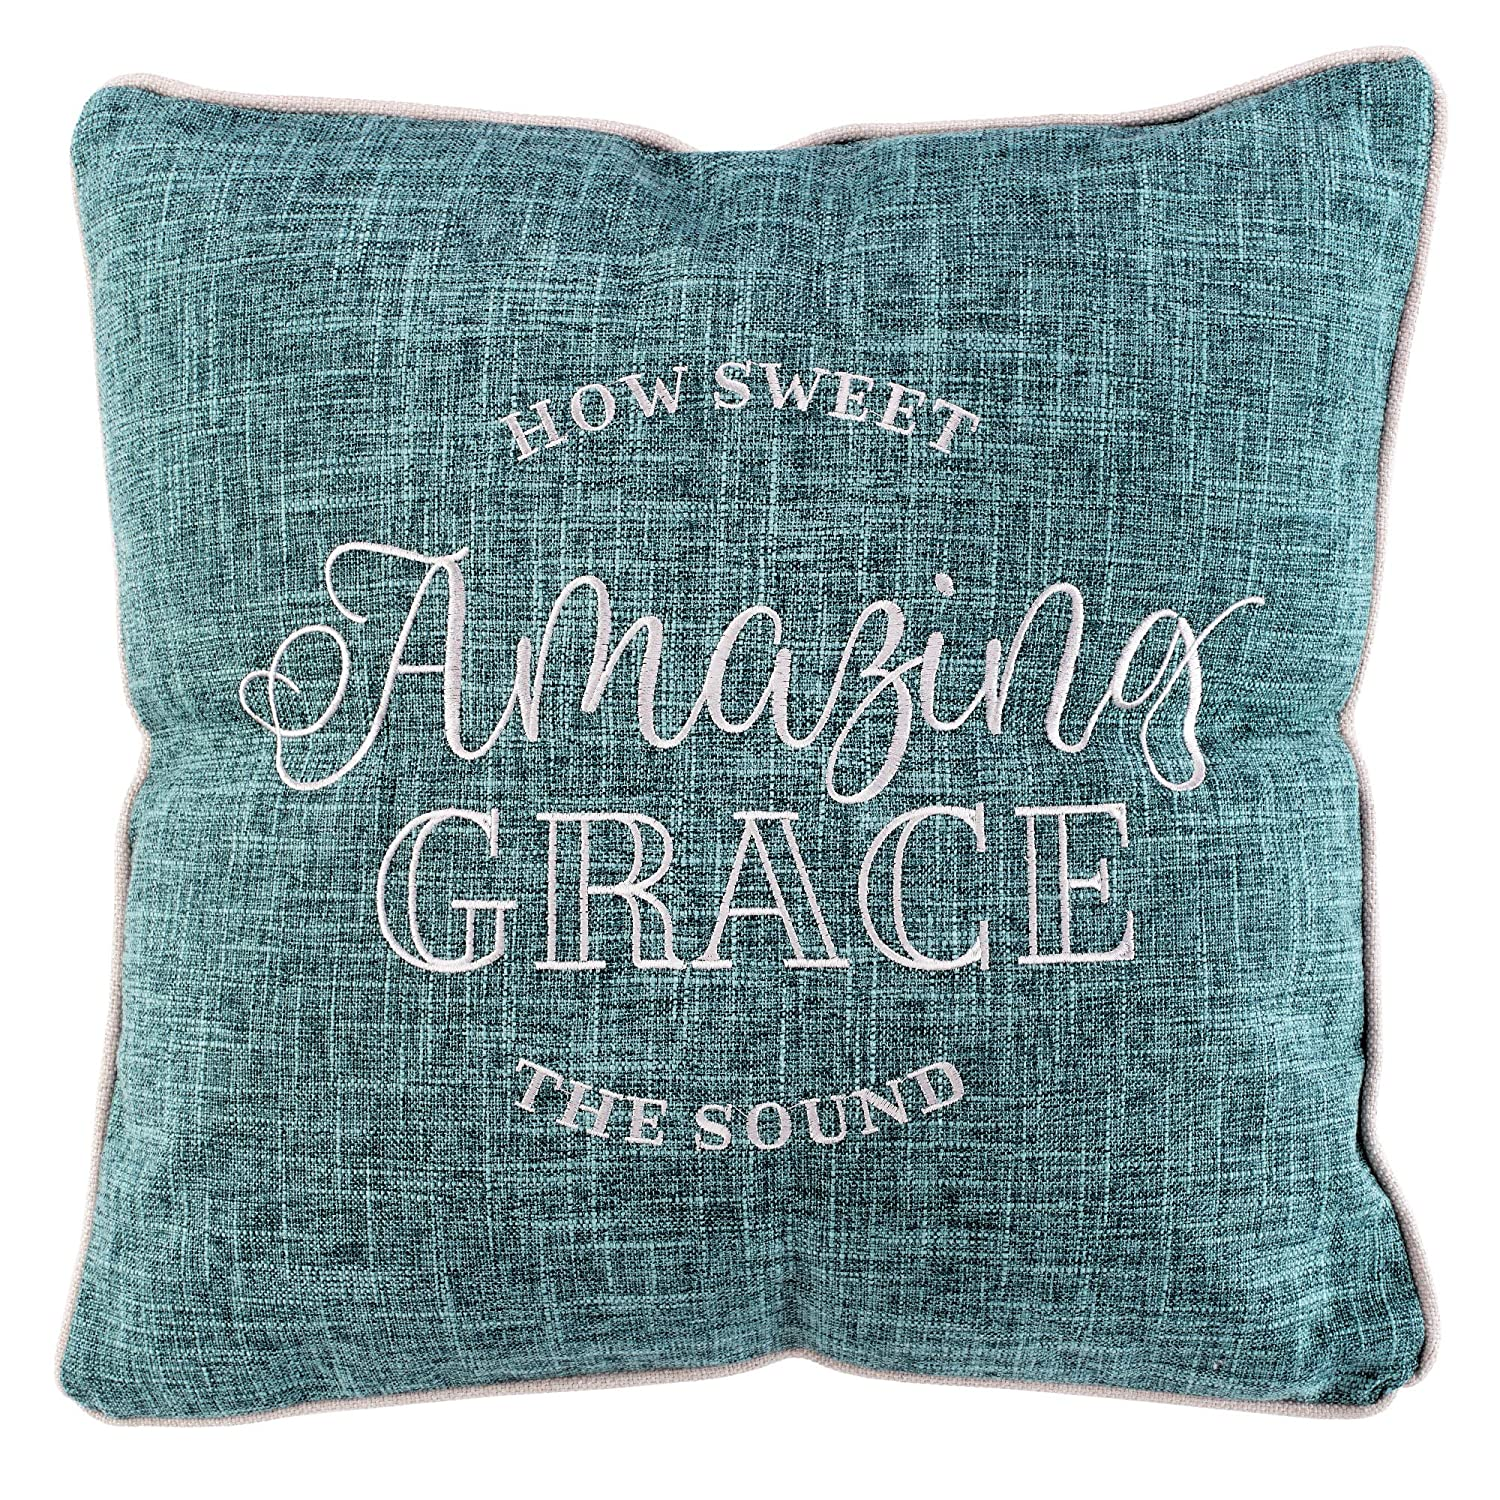 Sensational Christian Art Gifts Amazing Grace Embroidered Square Decorative Pillow In Teal Dailytribune Chair Design For Home Dailytribuneorg